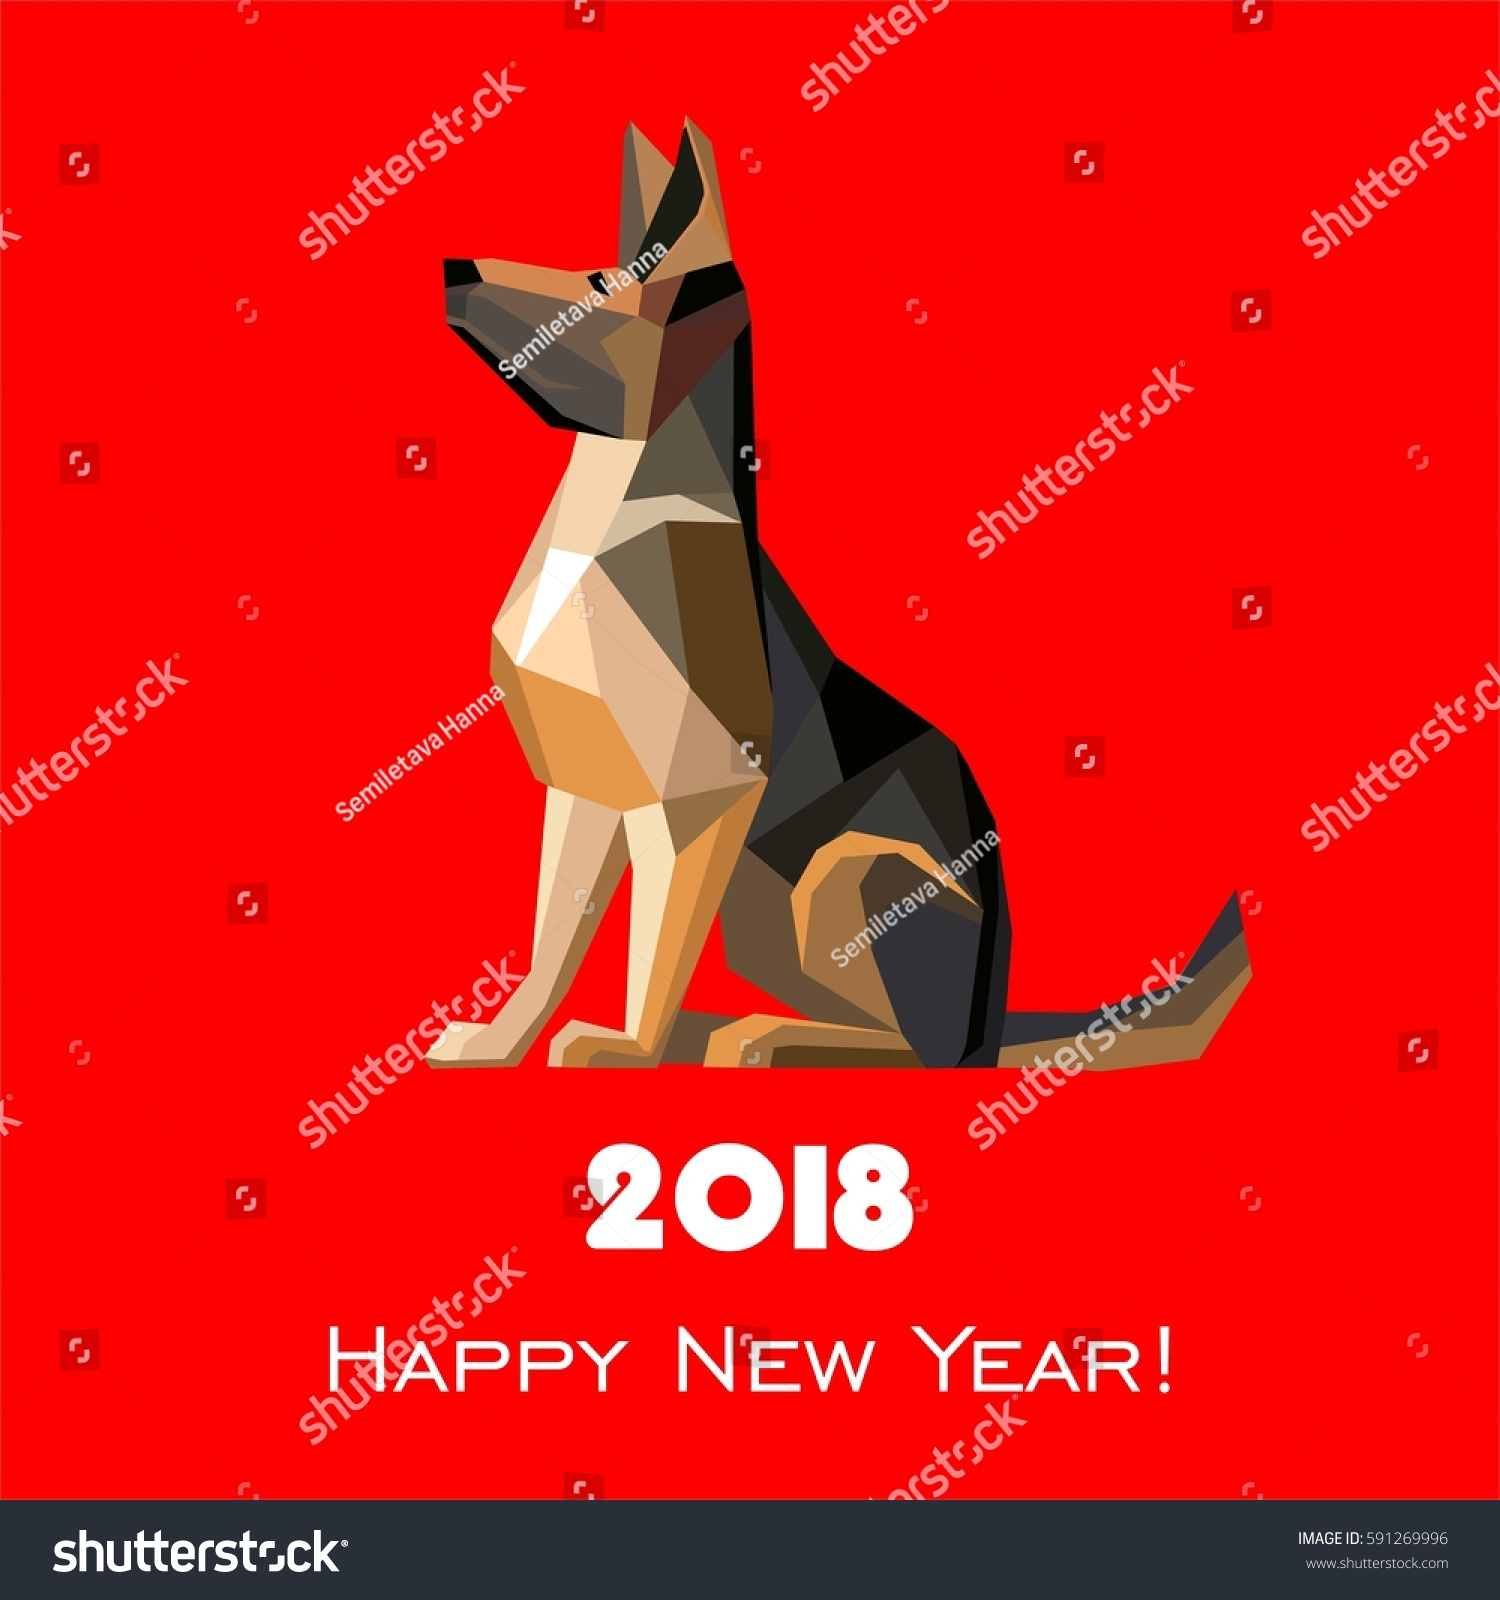 2018 Happy New Year Greeting Card Stock Illustration 591269996